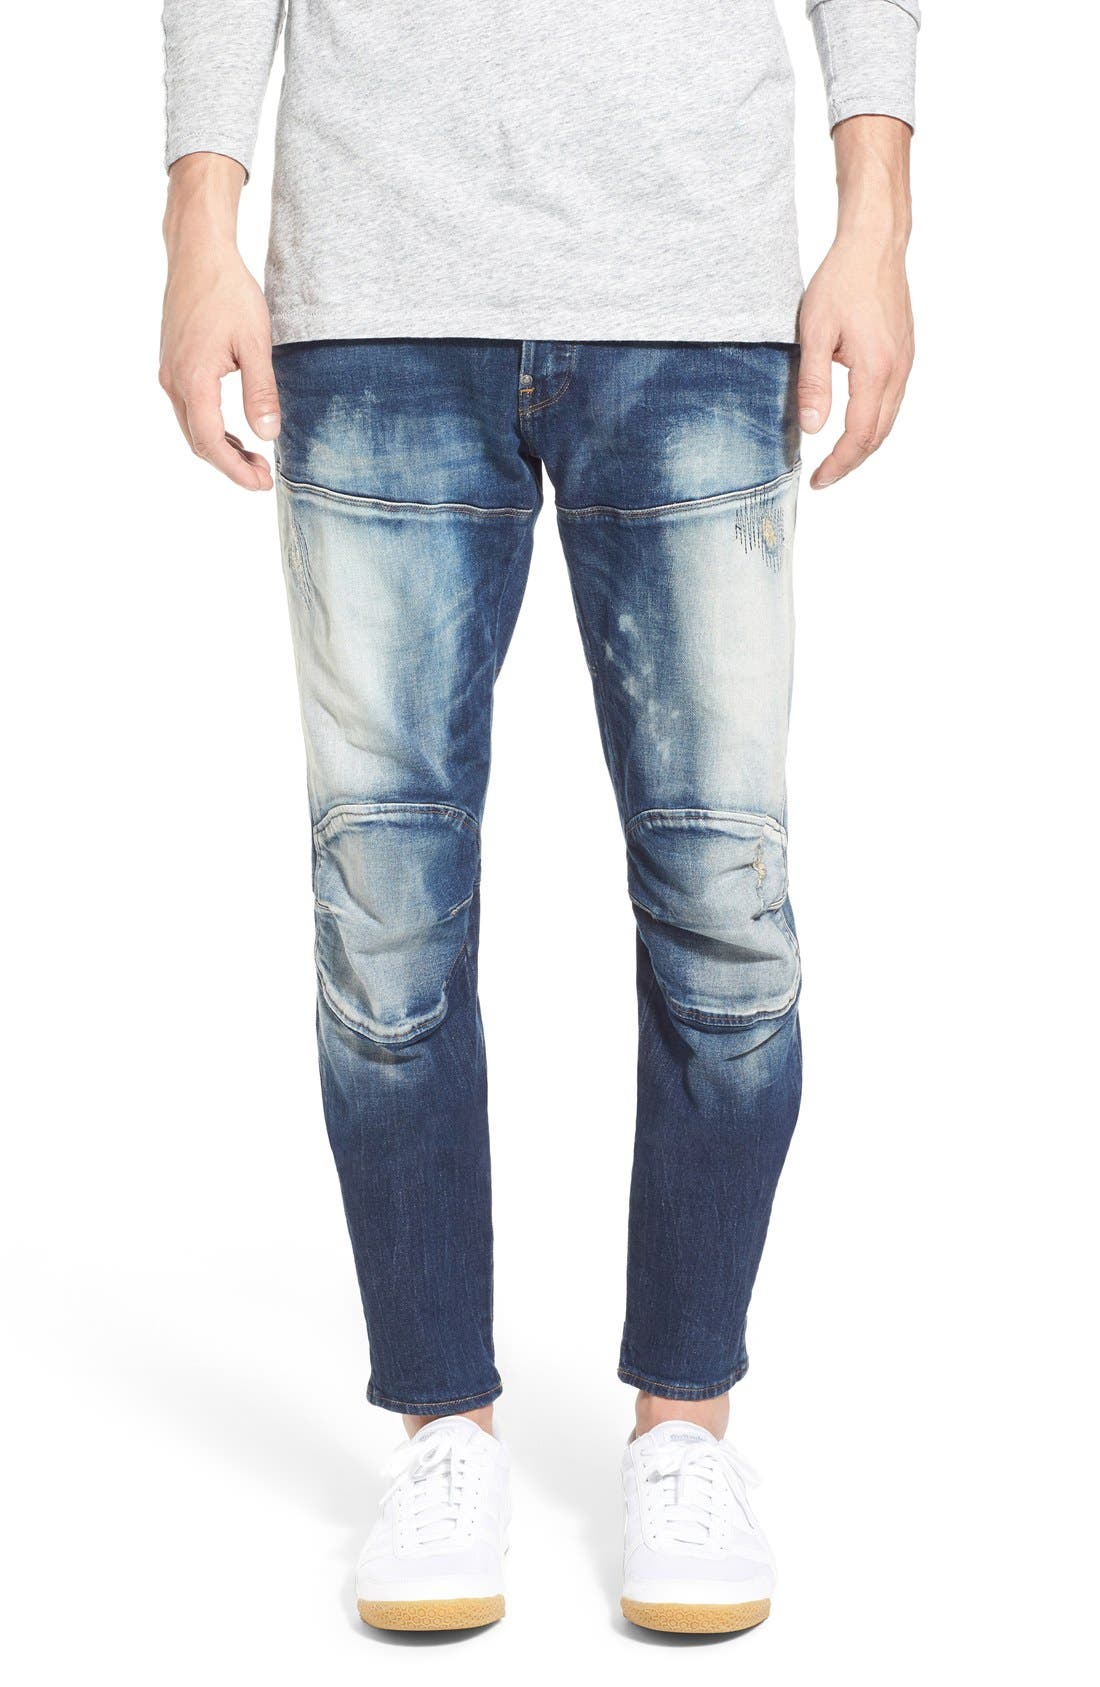 Alternate Image 1 Selected - G-Star Raw '5620 Type C' Skinny Fit Moto Jeans (Moon Wash Restored)